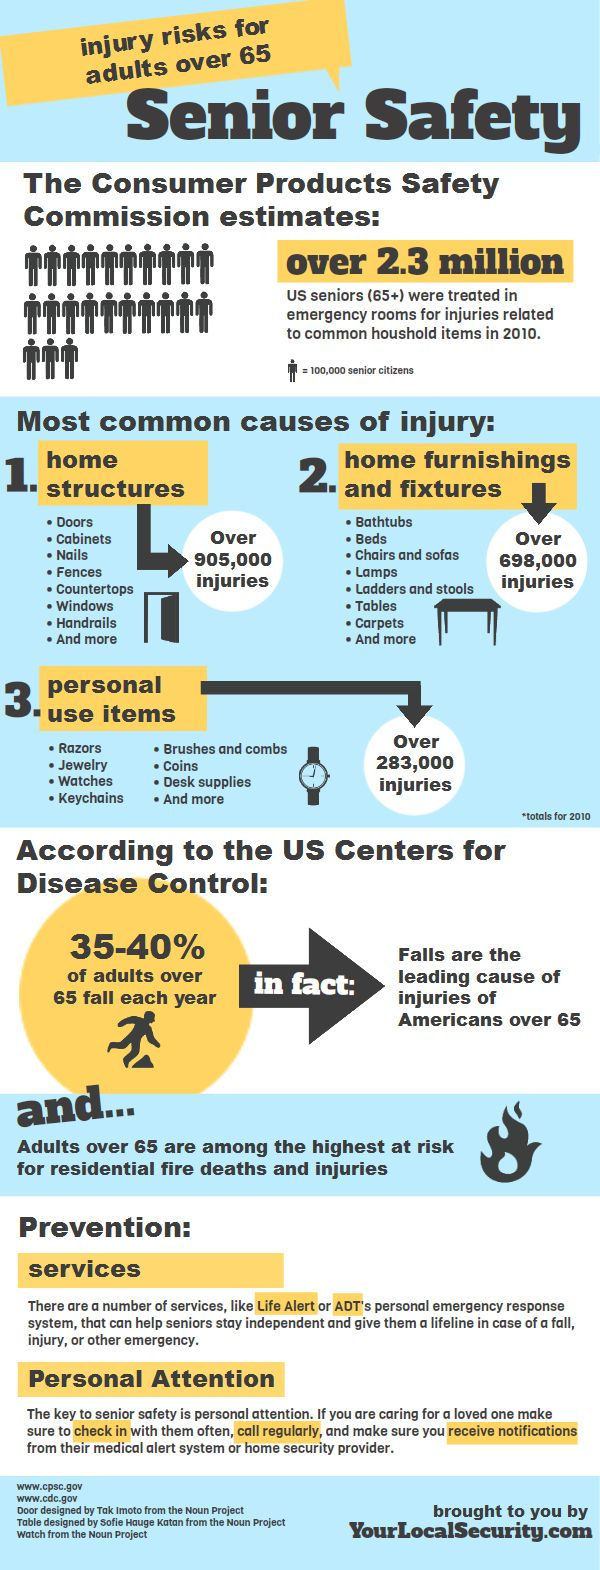 Senior Safety #infographic http://www.comfortkeepers.com/information-center/news-and-highlights/PreventingFallsinColdWeather